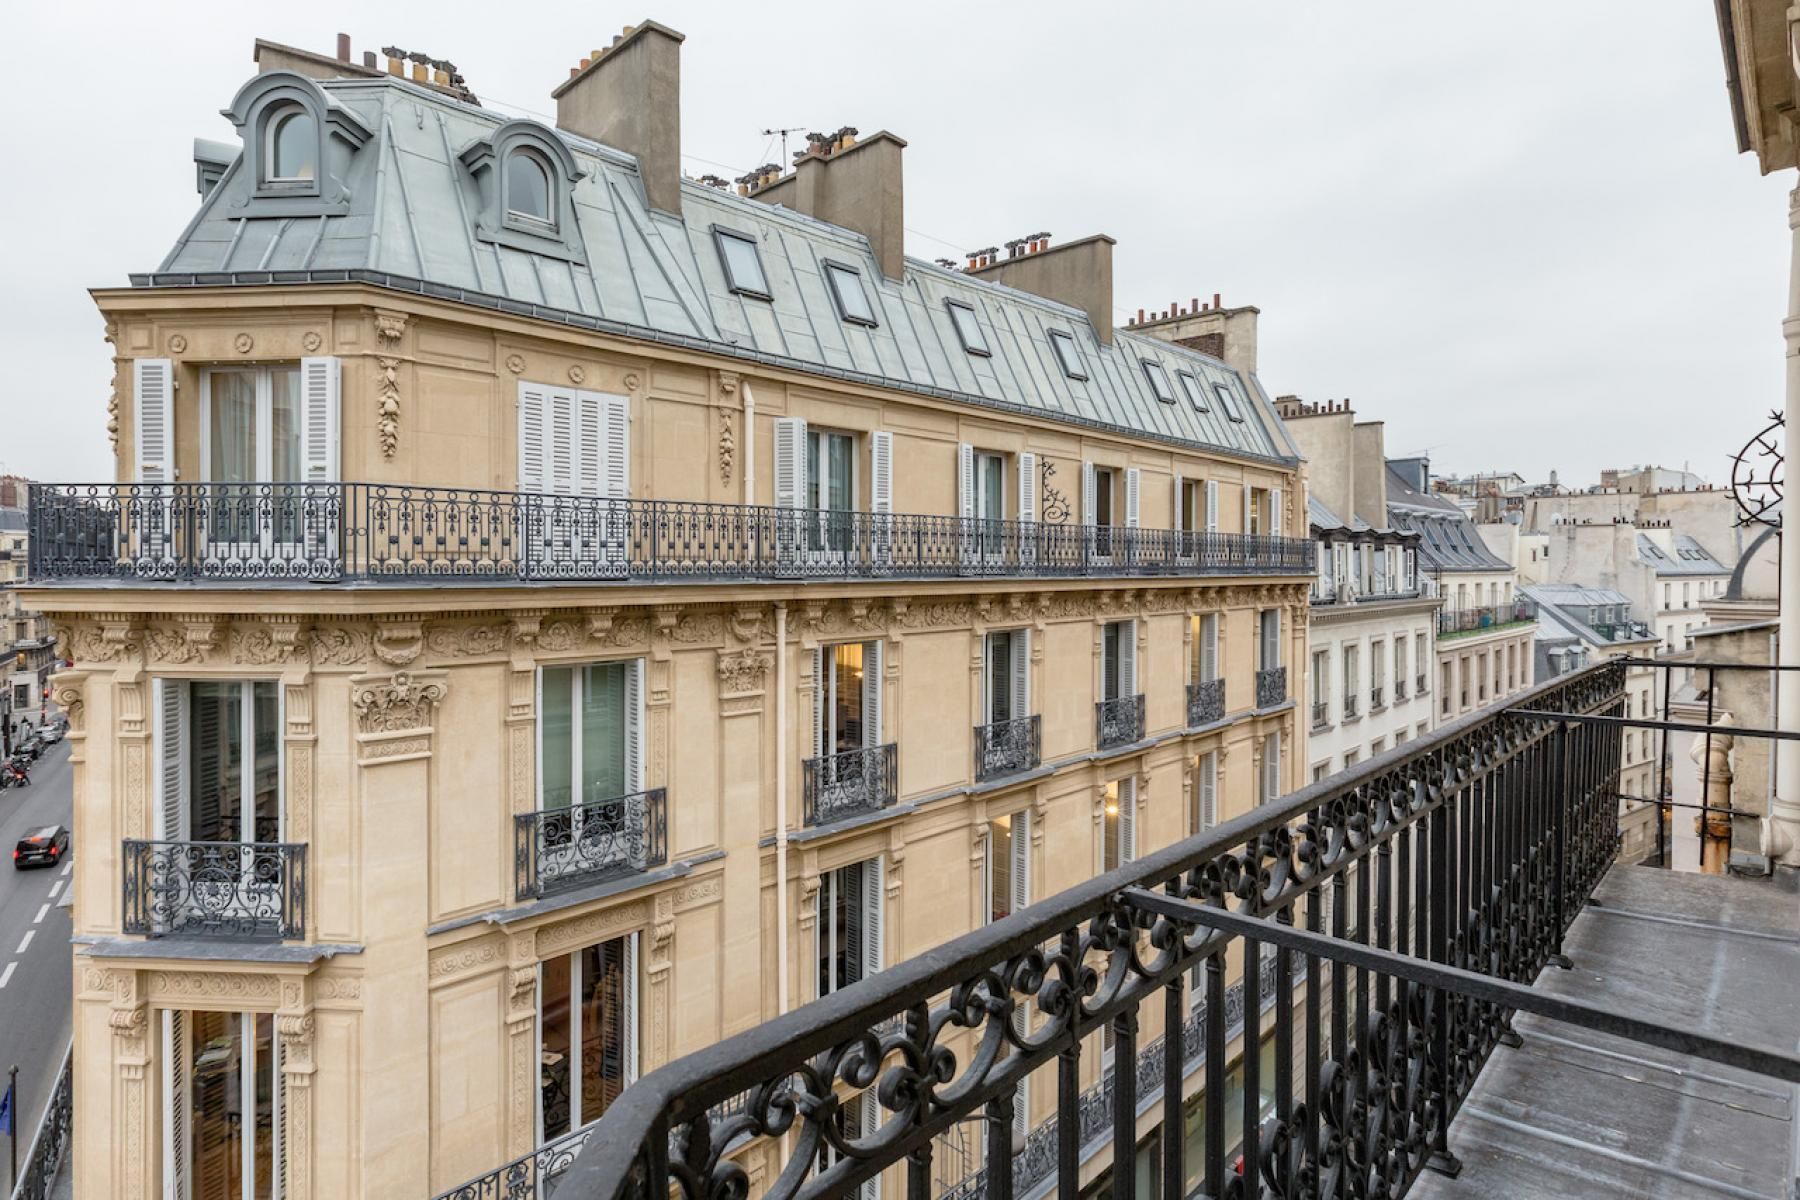 Our offices in this Haussmannian building at Rue du 4 Septembre brings elegance and style